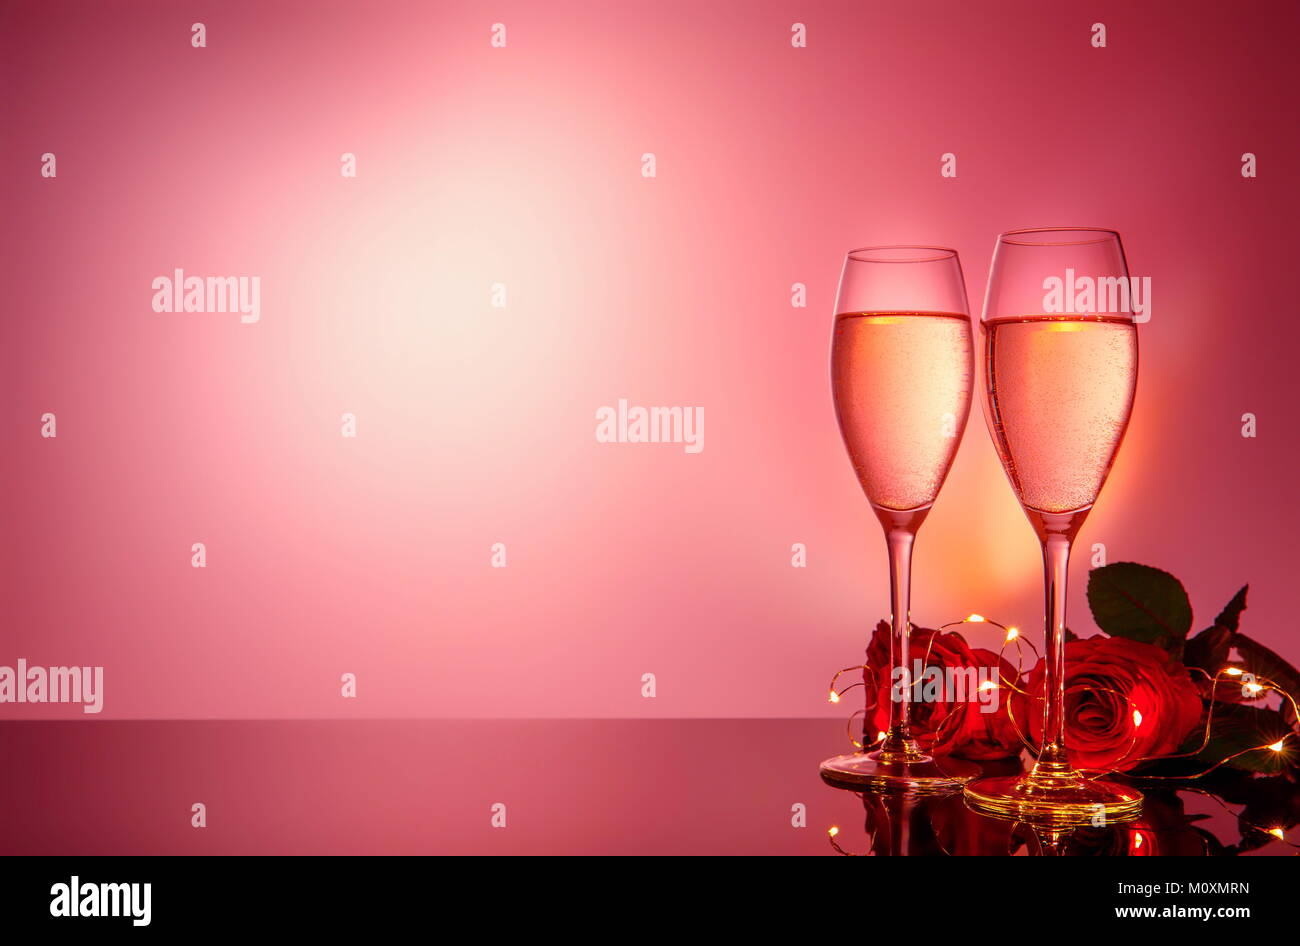 Champagne Glasses Red Roses In Front Of Pink Beige Background Valentines Day Holiday Composition